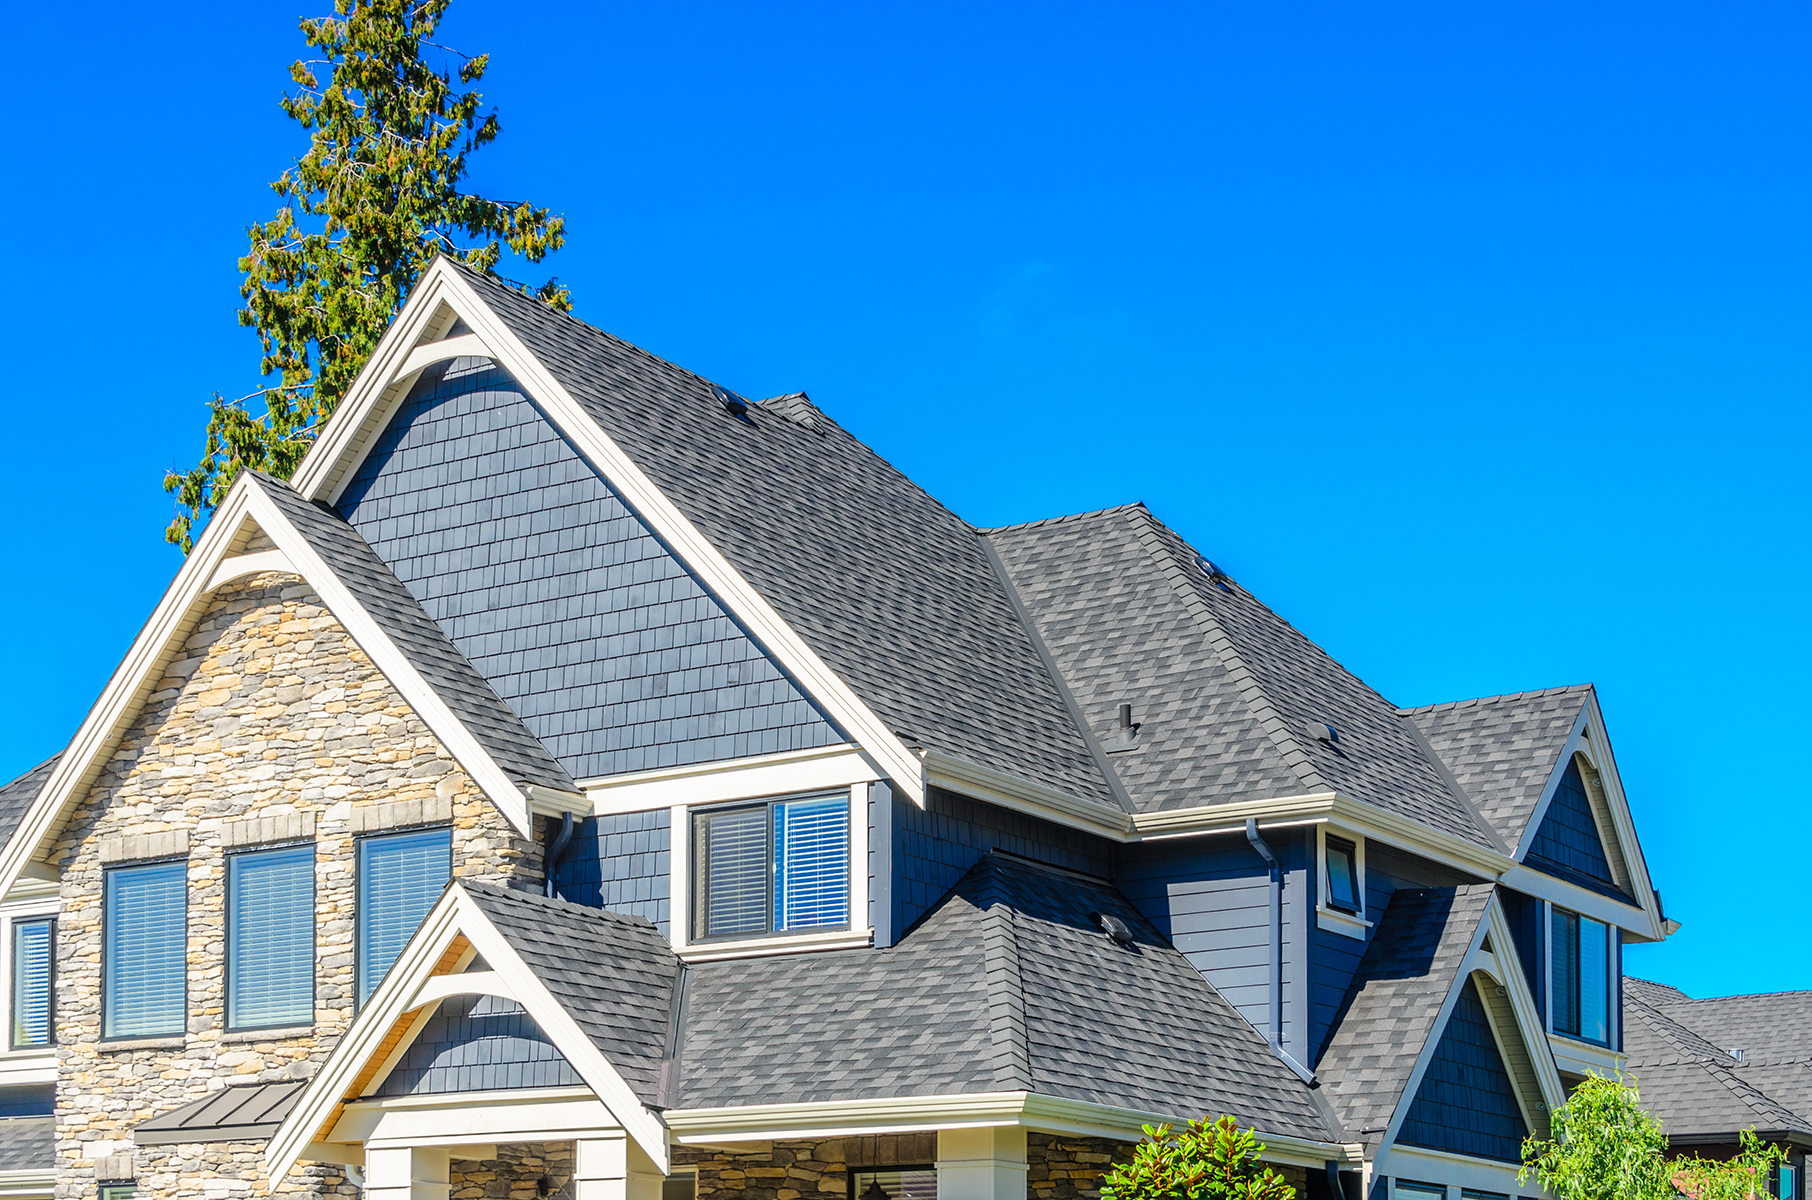 Country-Lumber-House-Roofing.jpg